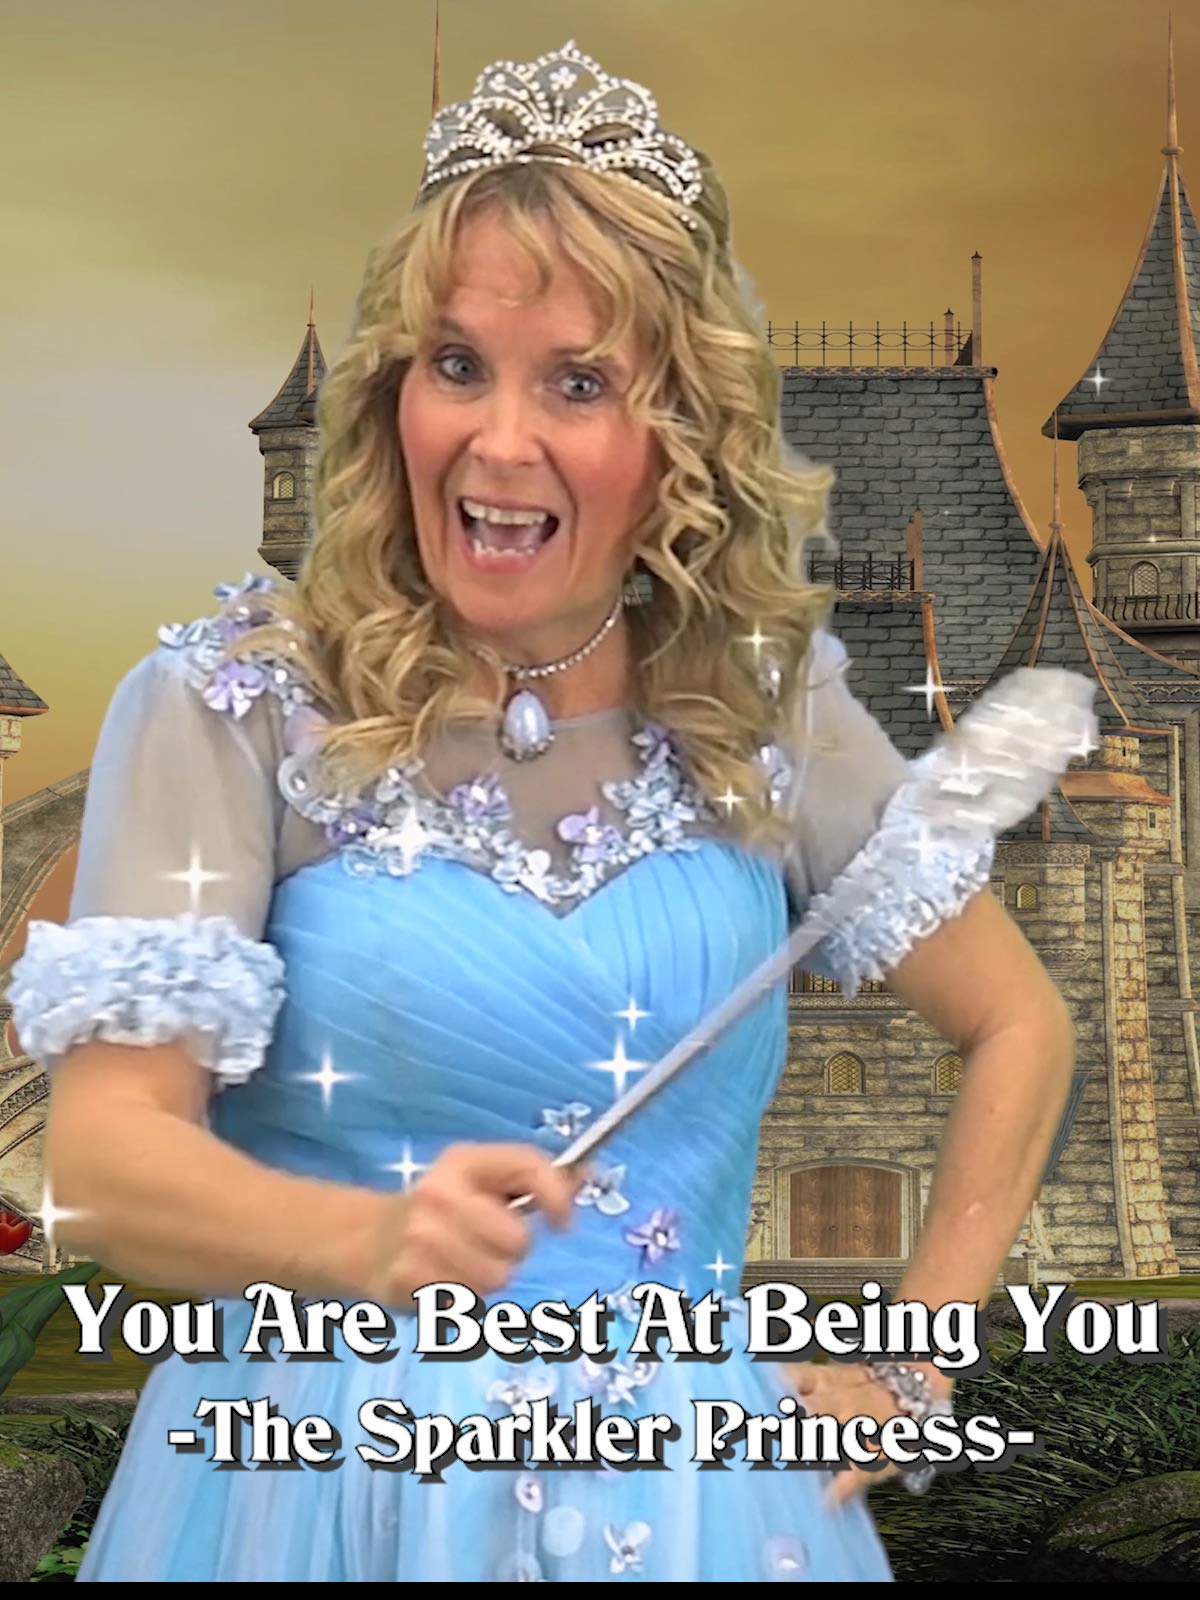 You Are Best At Being You!